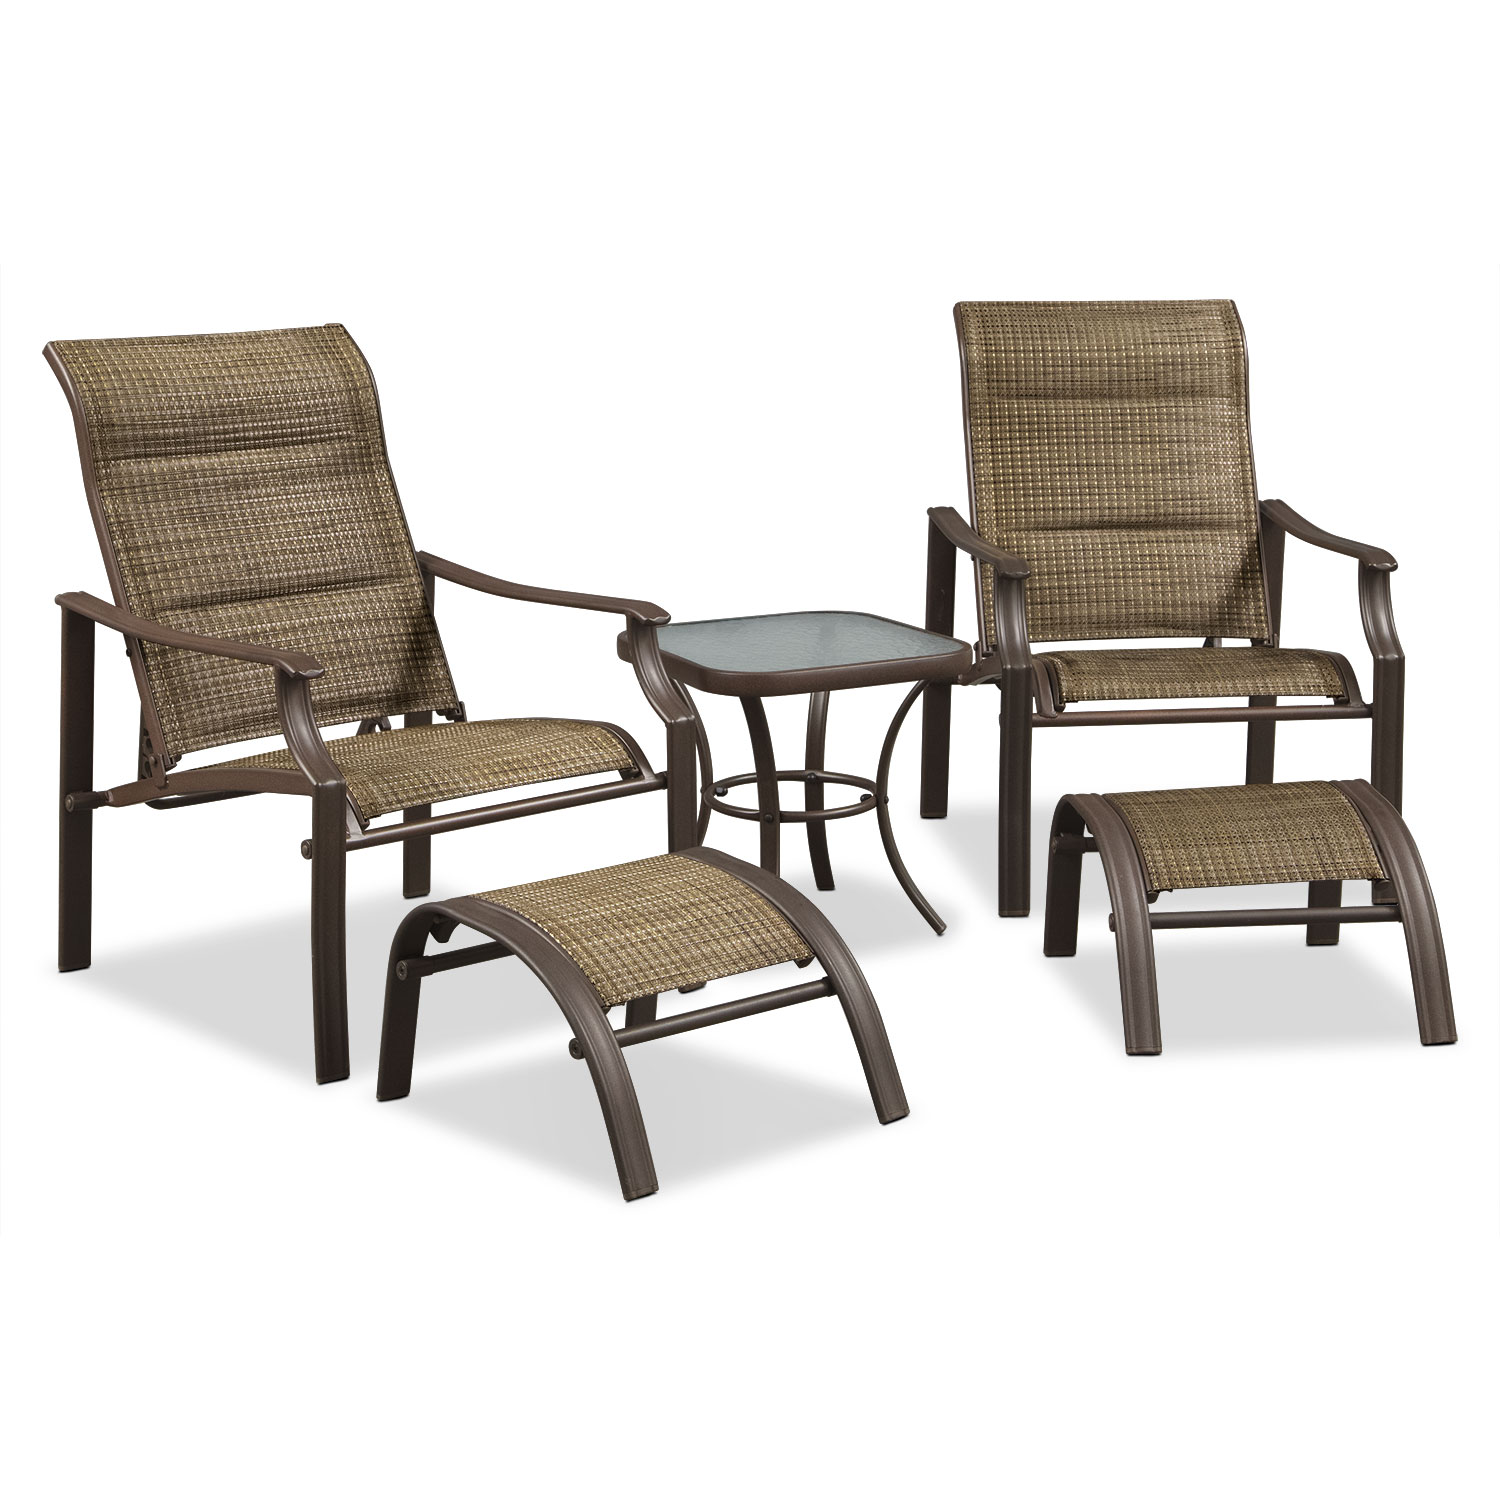 Outdoor Furniture - Terrace 5 Pc. Chat Set